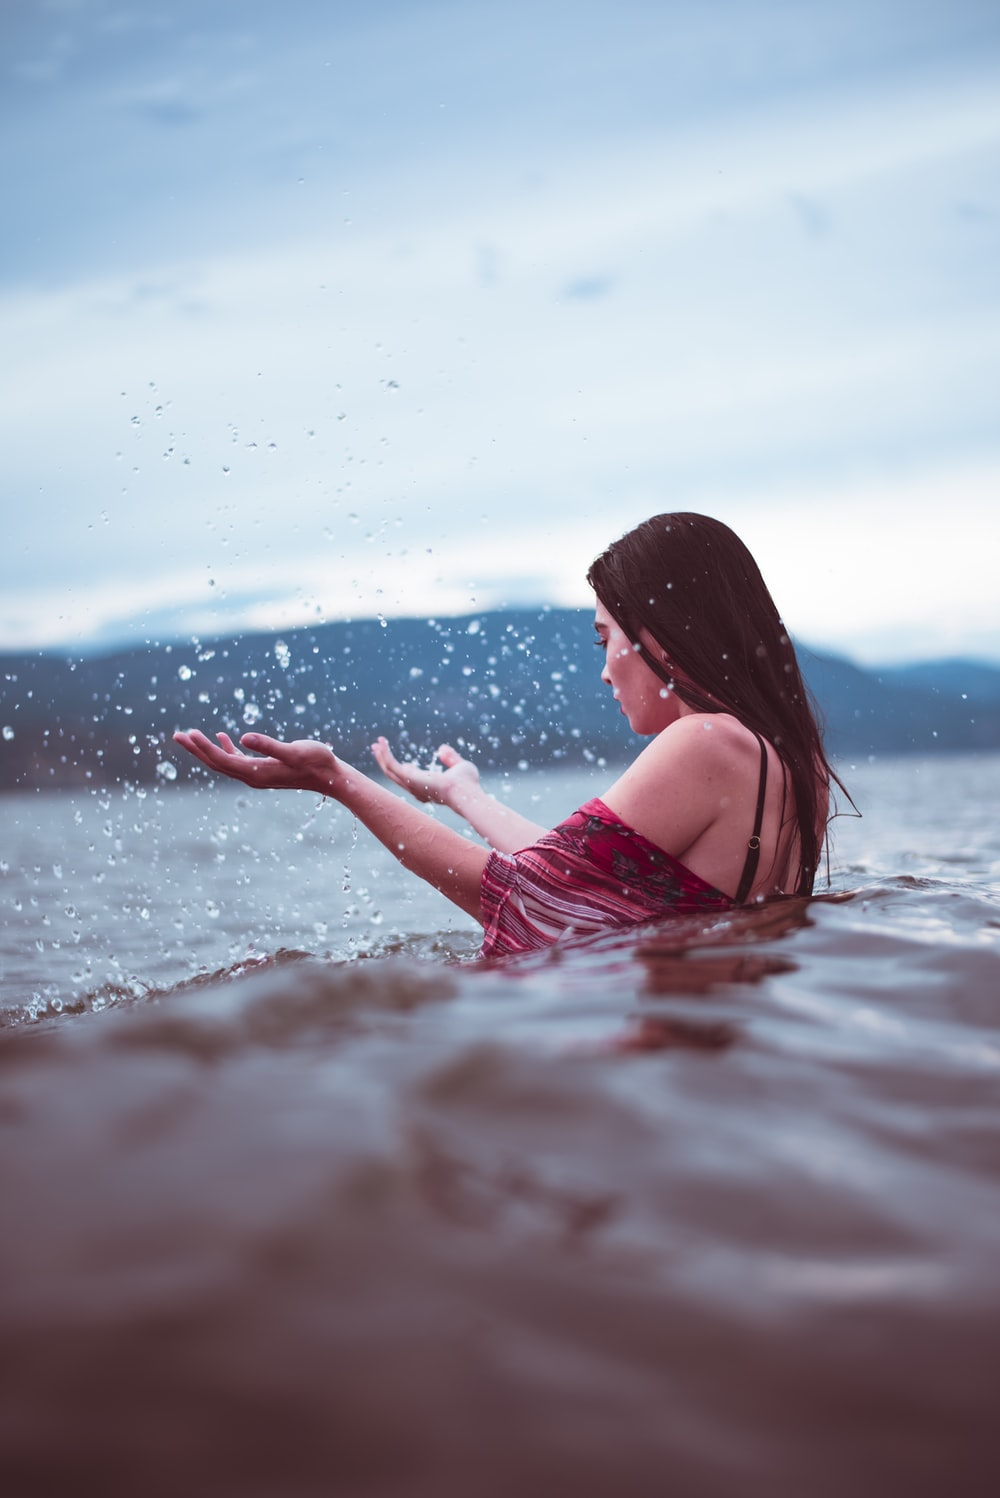 woman in red dress on water during daytime